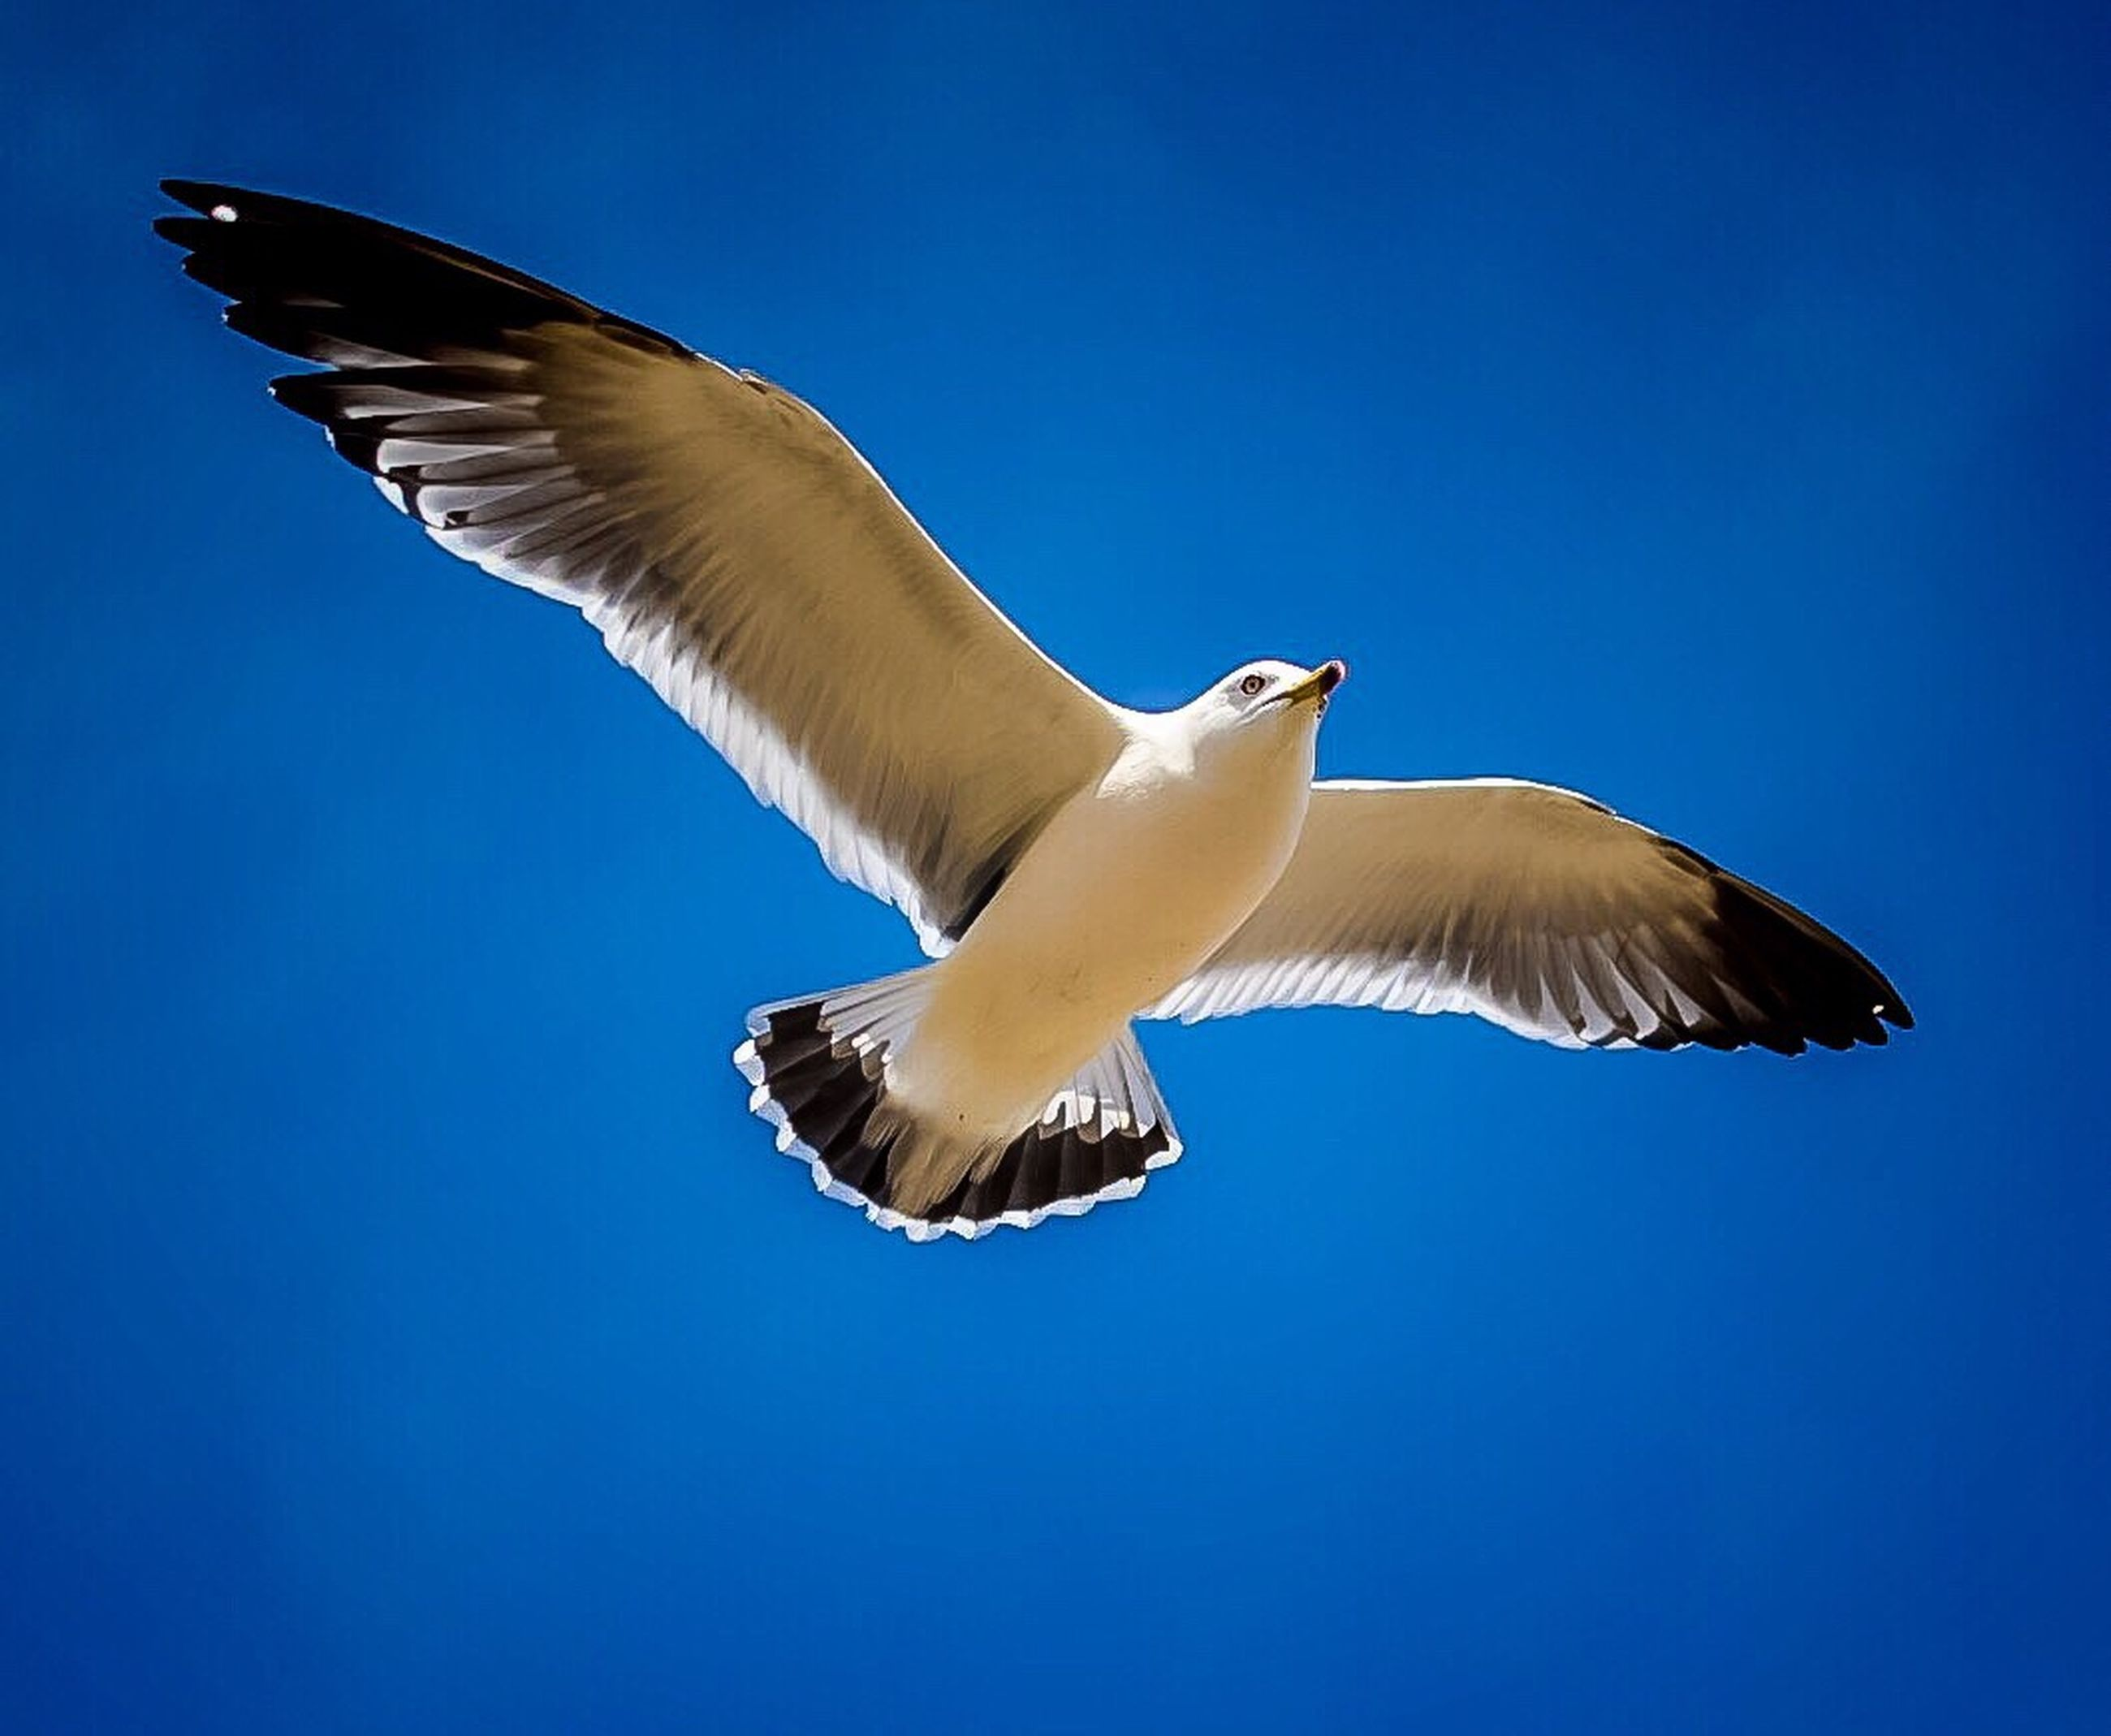 flying, spread wings, animal themes, bird, animals in the wild, blue, clear sky, mid-air, wildlife, low angle view, seagull, one animal, copy space, motion, animal wing, flight, freedom, nature, full length, on the move